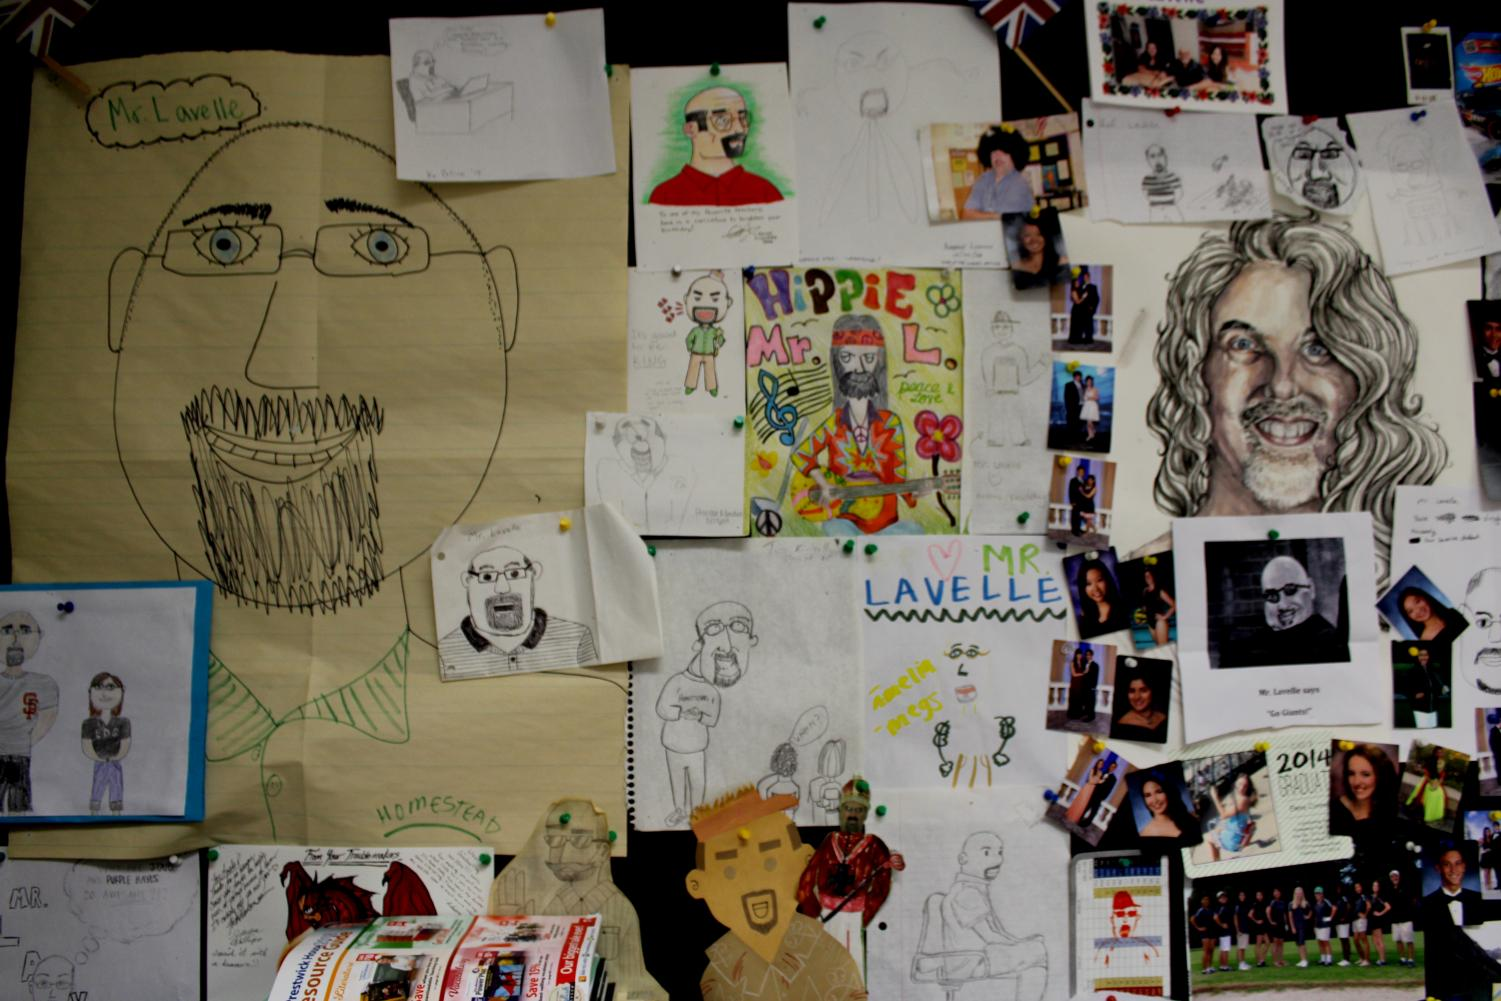 %E2%80%9CI+have+a+lot+of+personal+mementos+up+on+this+wall.+Kids+have+made+different+caricatures+of+me+over+the+years.+It+started+my+first+year+here+at+Homestead%2C+and+the+kids+have+always+had+fun+drawing+me.+I+have+a+nice%2C+round%2C+bald+head%2C+so+it+must+be+easy.%E2%80%9D+-Steve+Lavelle